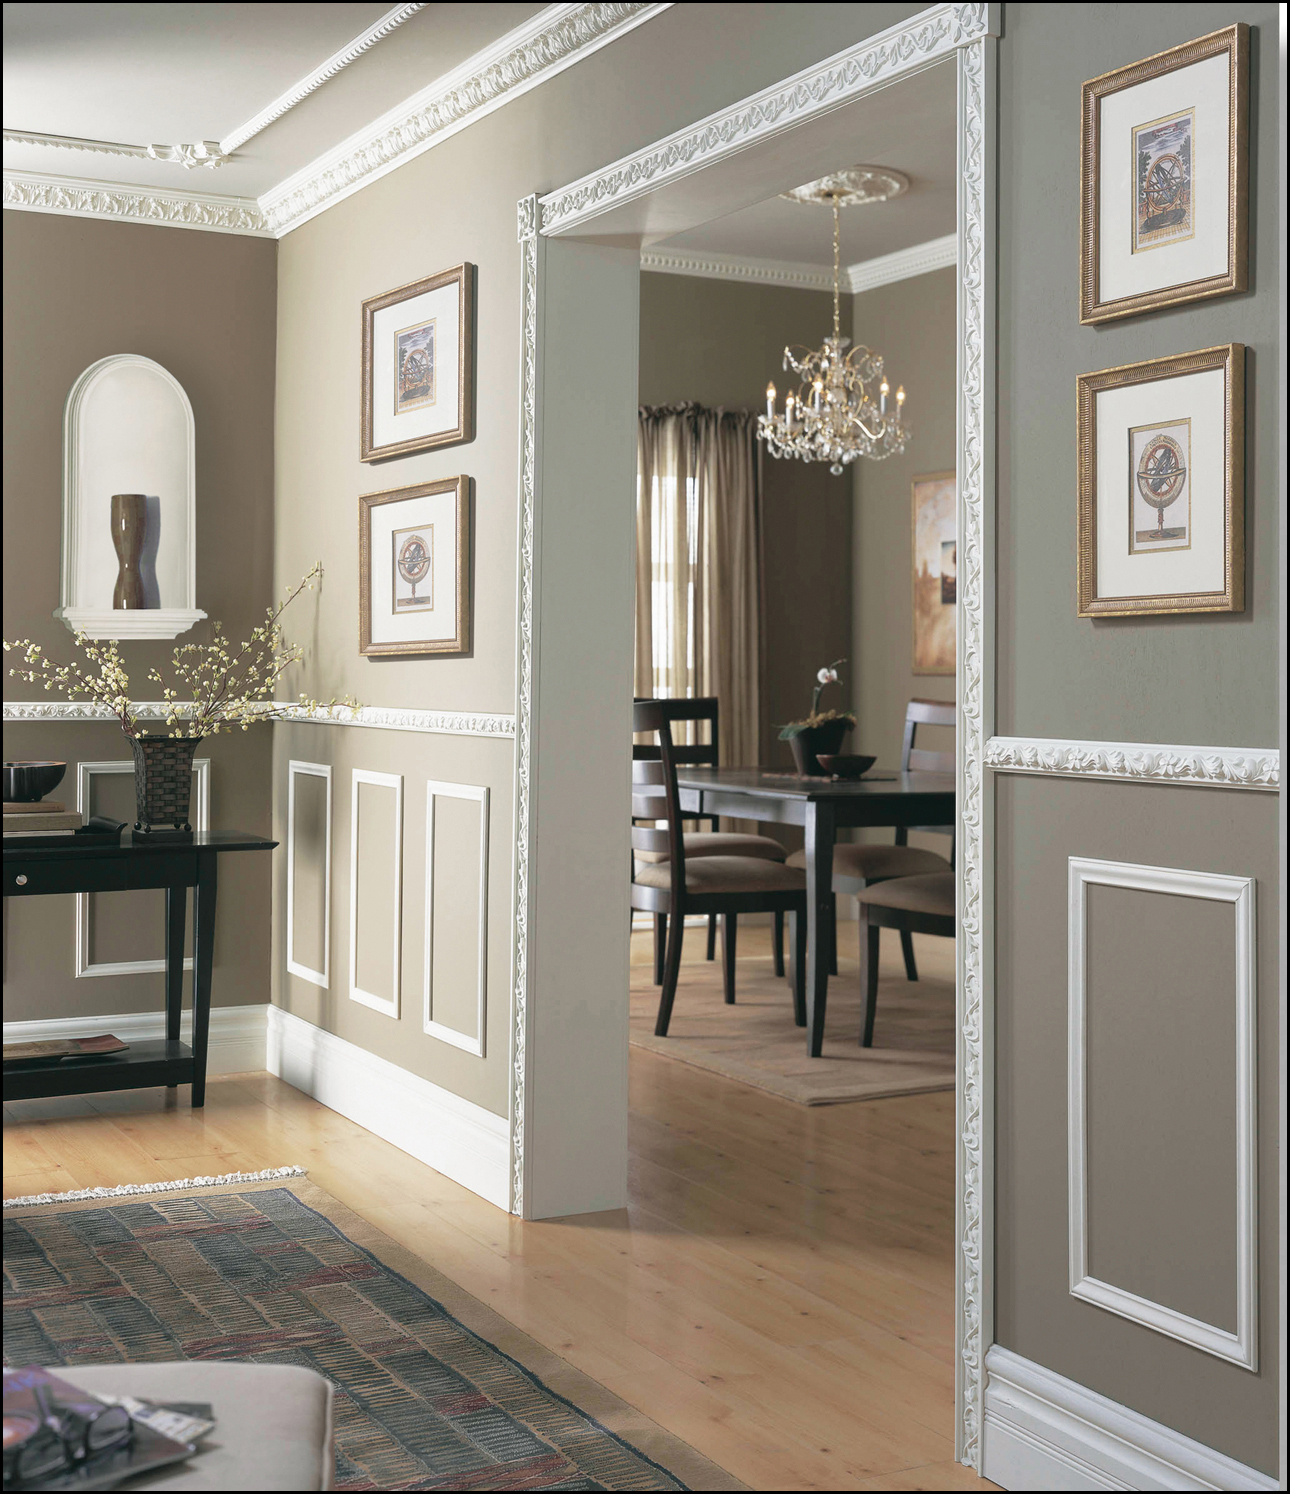 Dining Room Trim : Dining room archives page of design your home